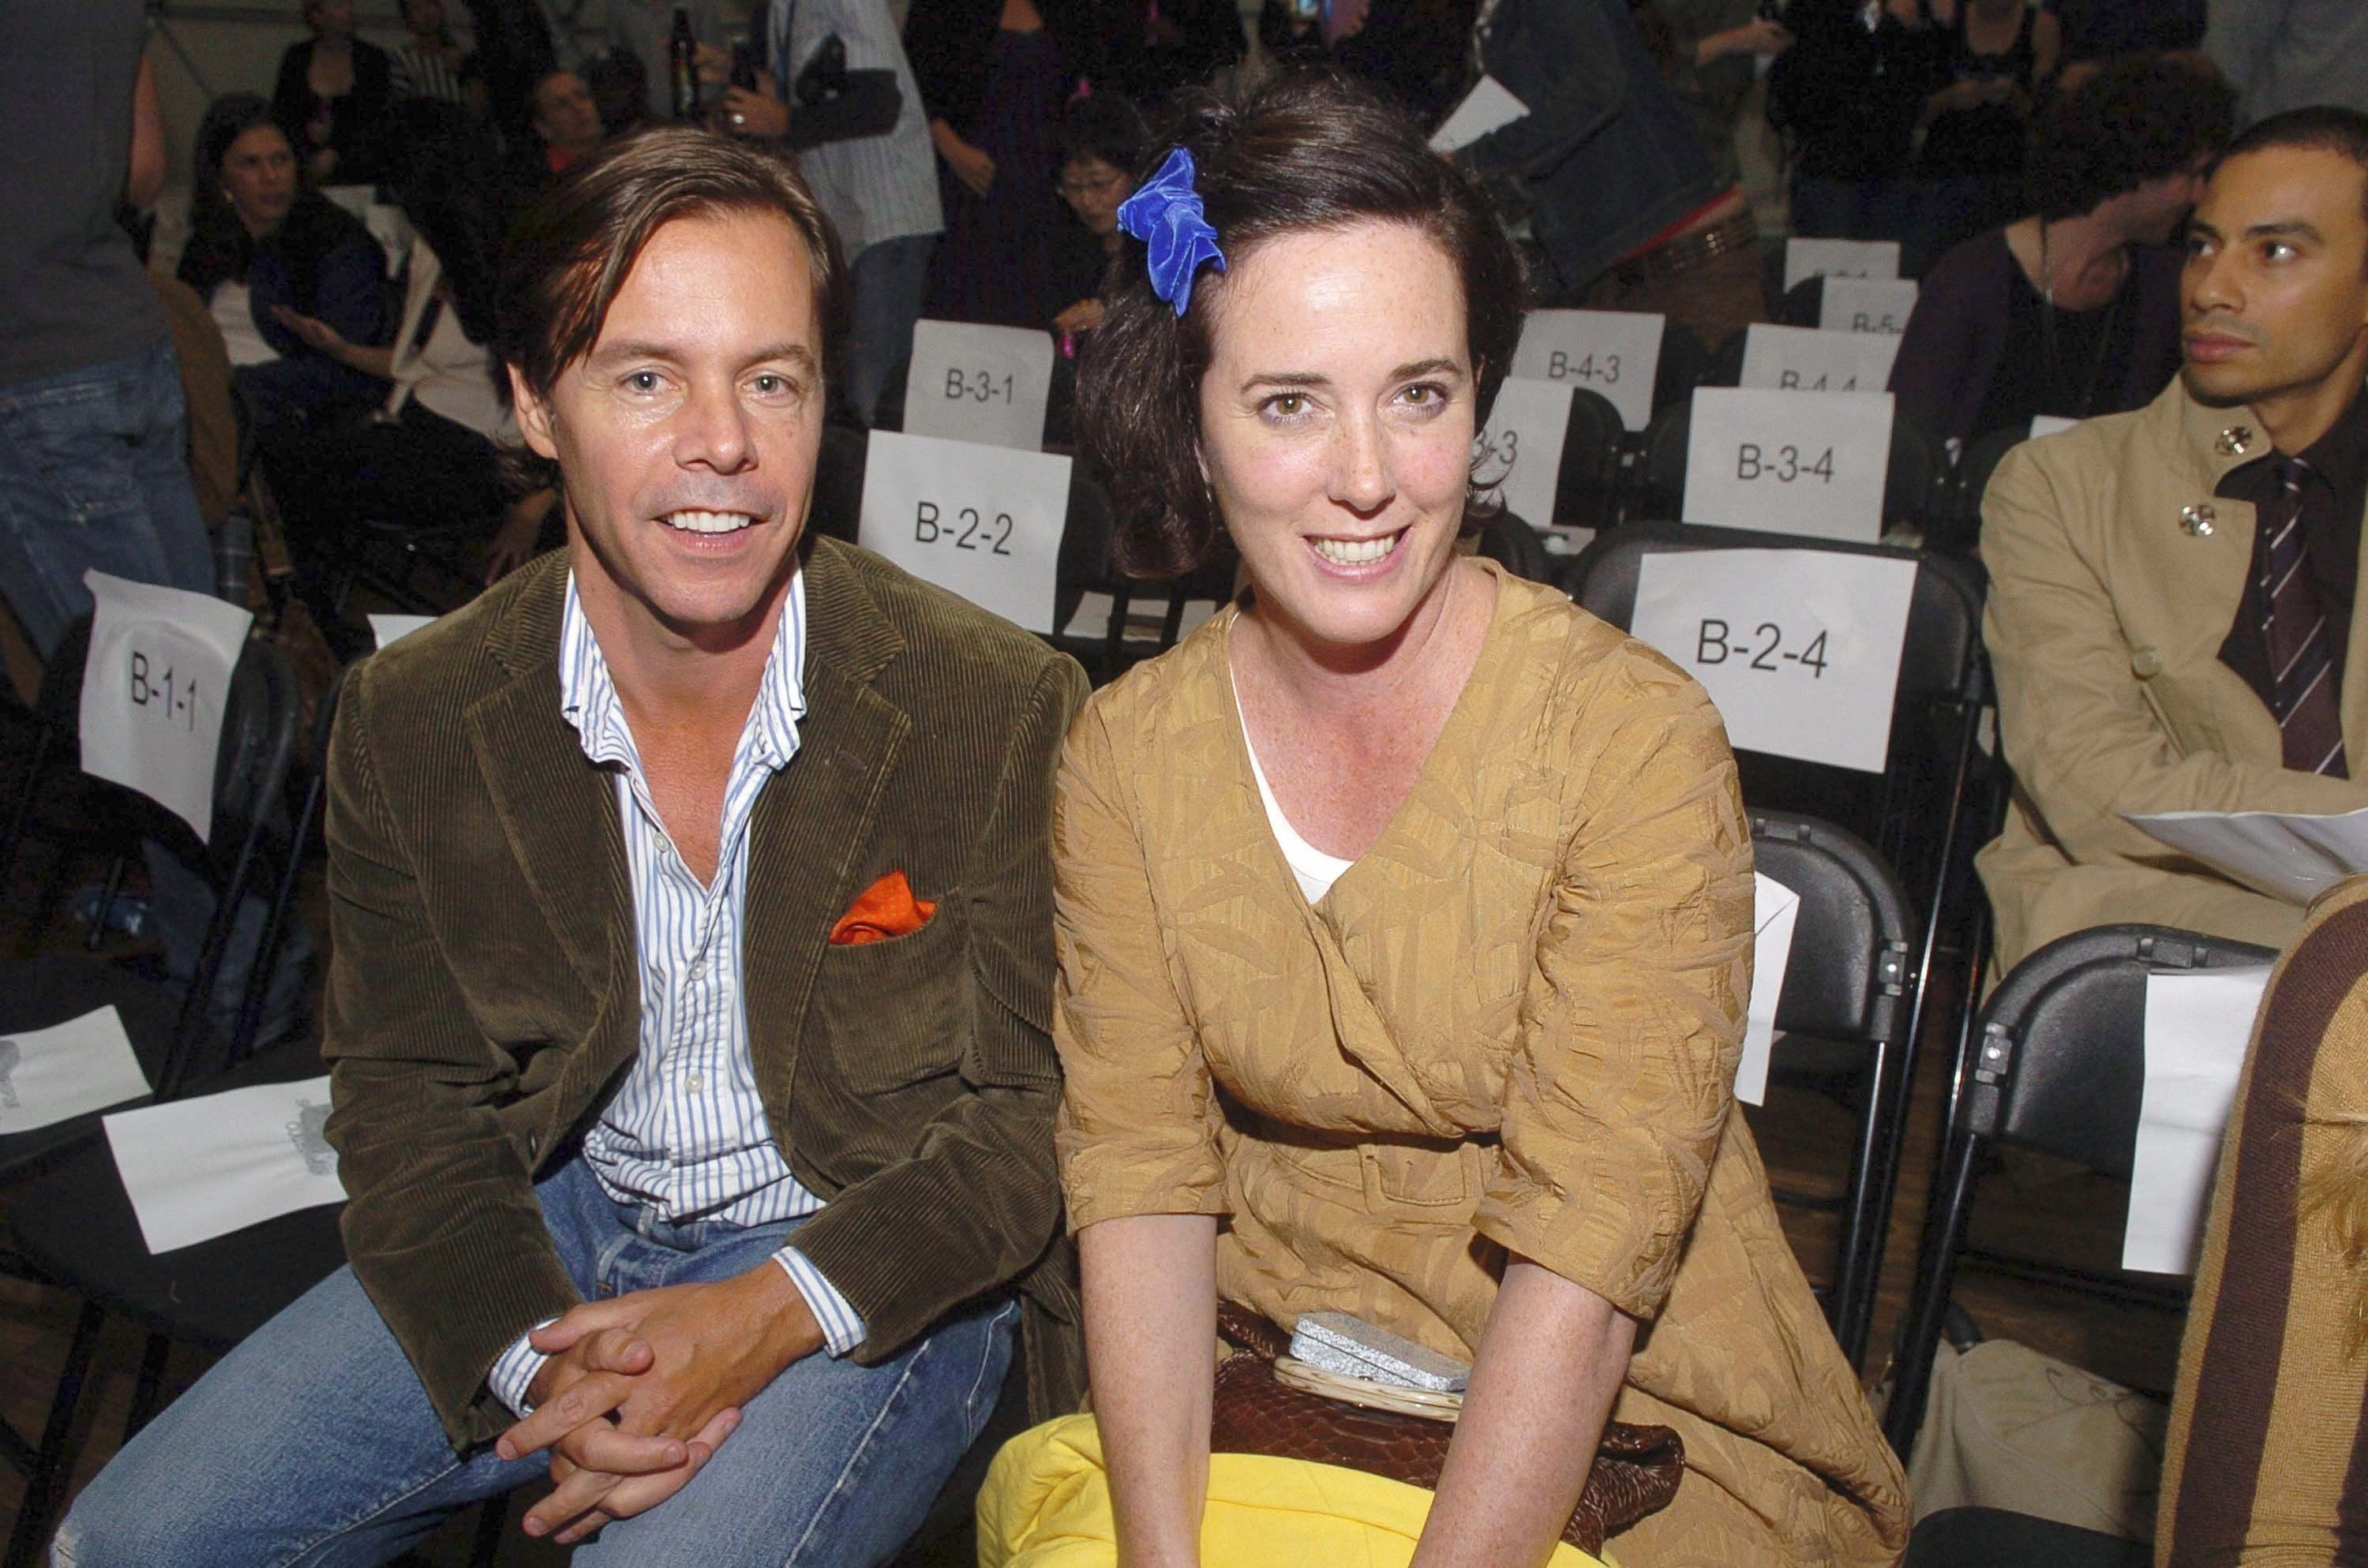 Celeb reactions to Kate Spade's death